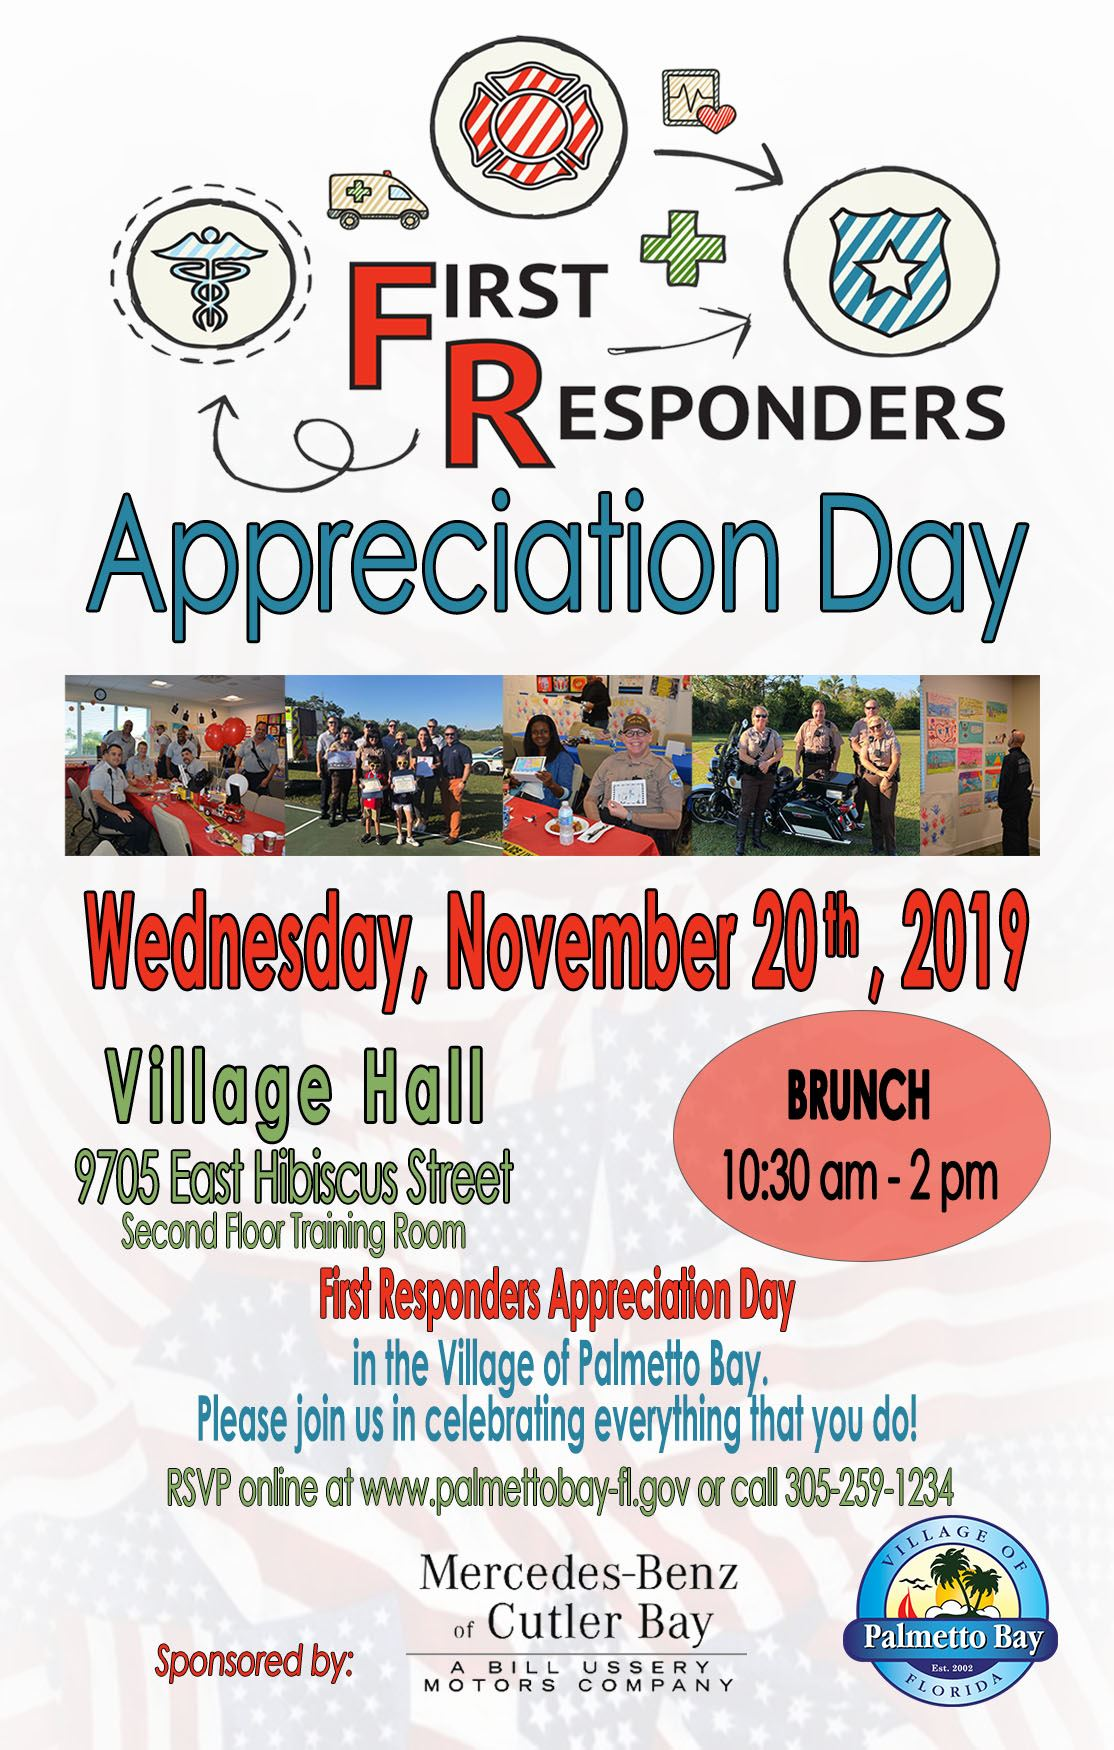 First Responders Appreciation Day, Wednesday, November 20th from 10:30a-2P at Village Hall